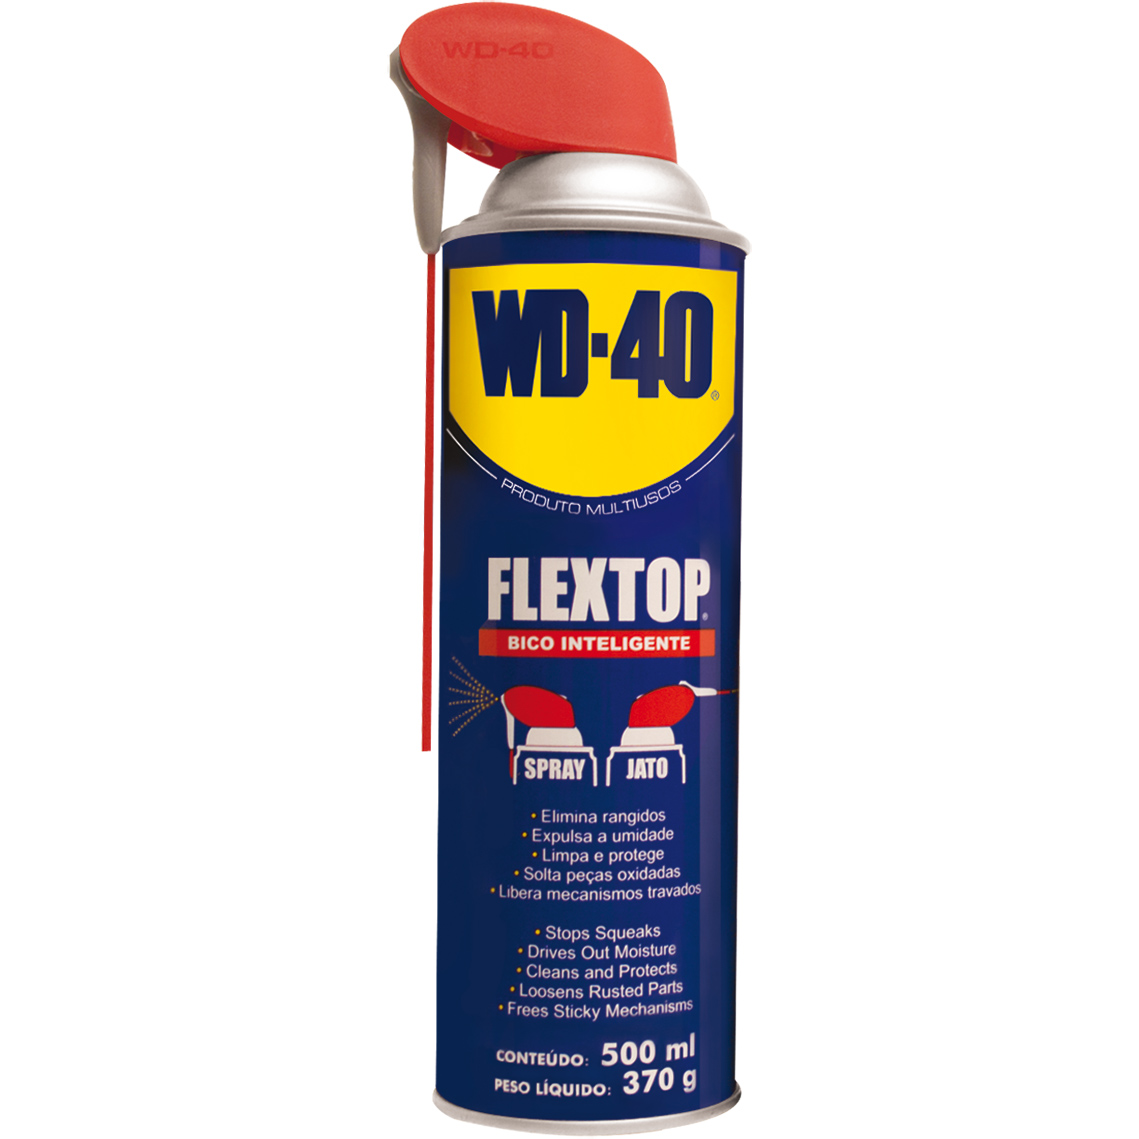 wd 40 multiusos flextop c bico inteligente 500ml mxparts loja motocross trilha. Black Bedroom Furniture Sets. Home Design Ideas